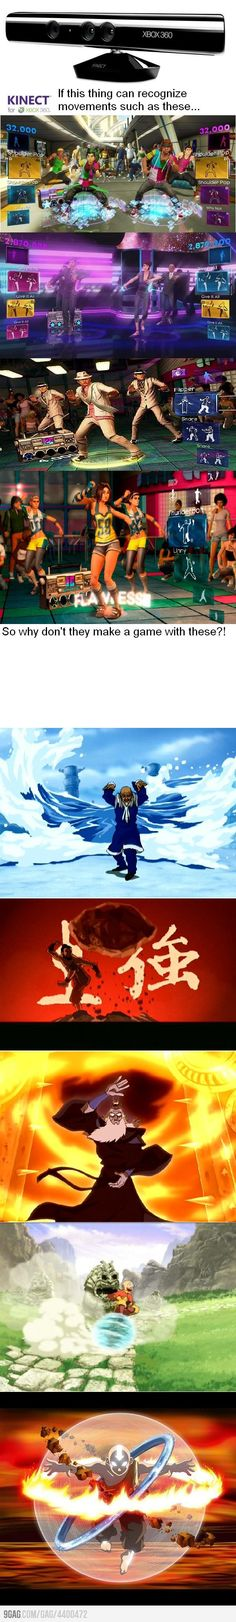 There really does need to be an epic ATLA game